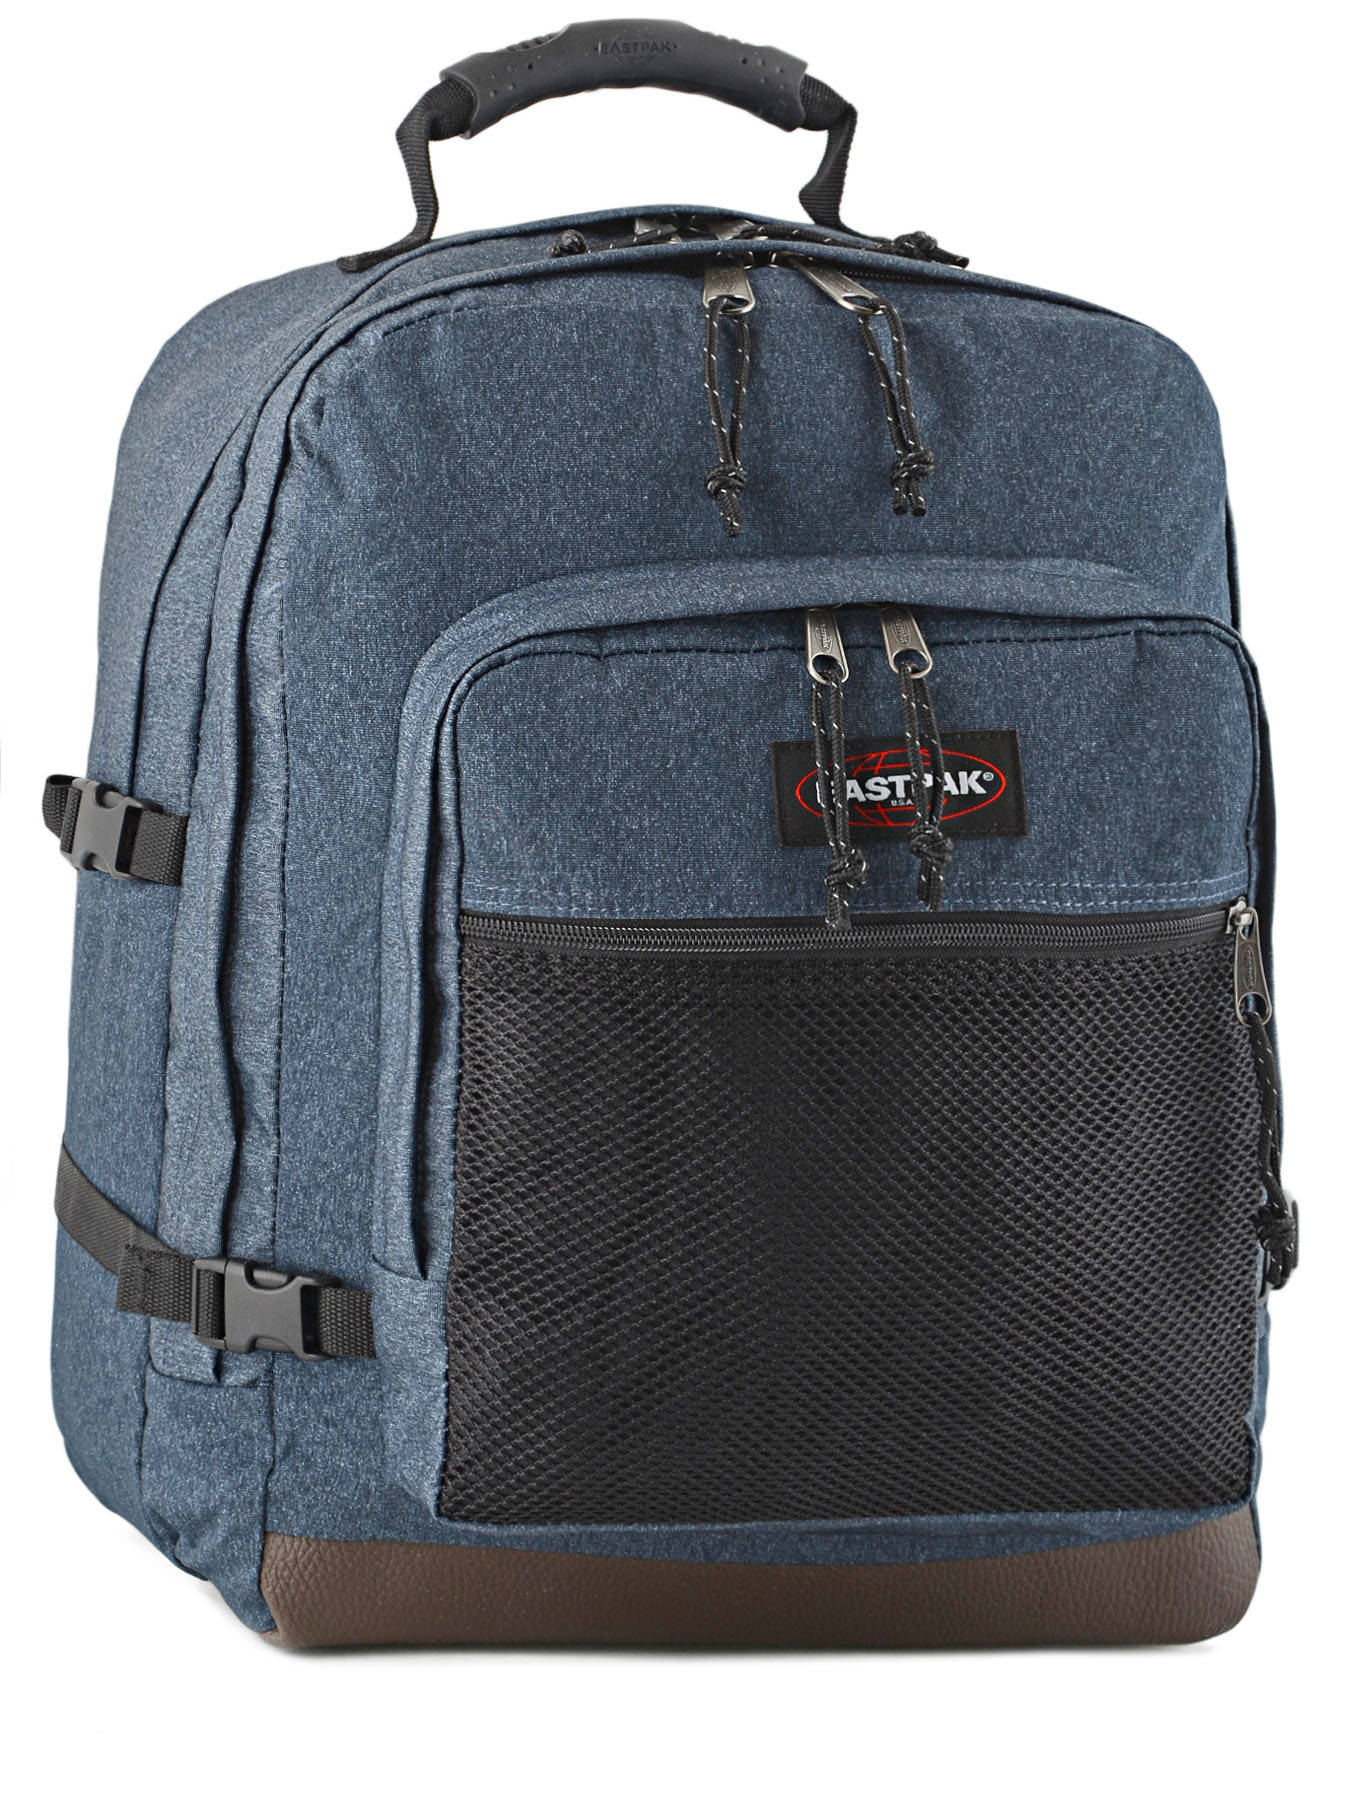 sac dos eastpak authentic double denim en vente au meilleur prix. Black Bedroom Furniture Sets. Home Design Ideas